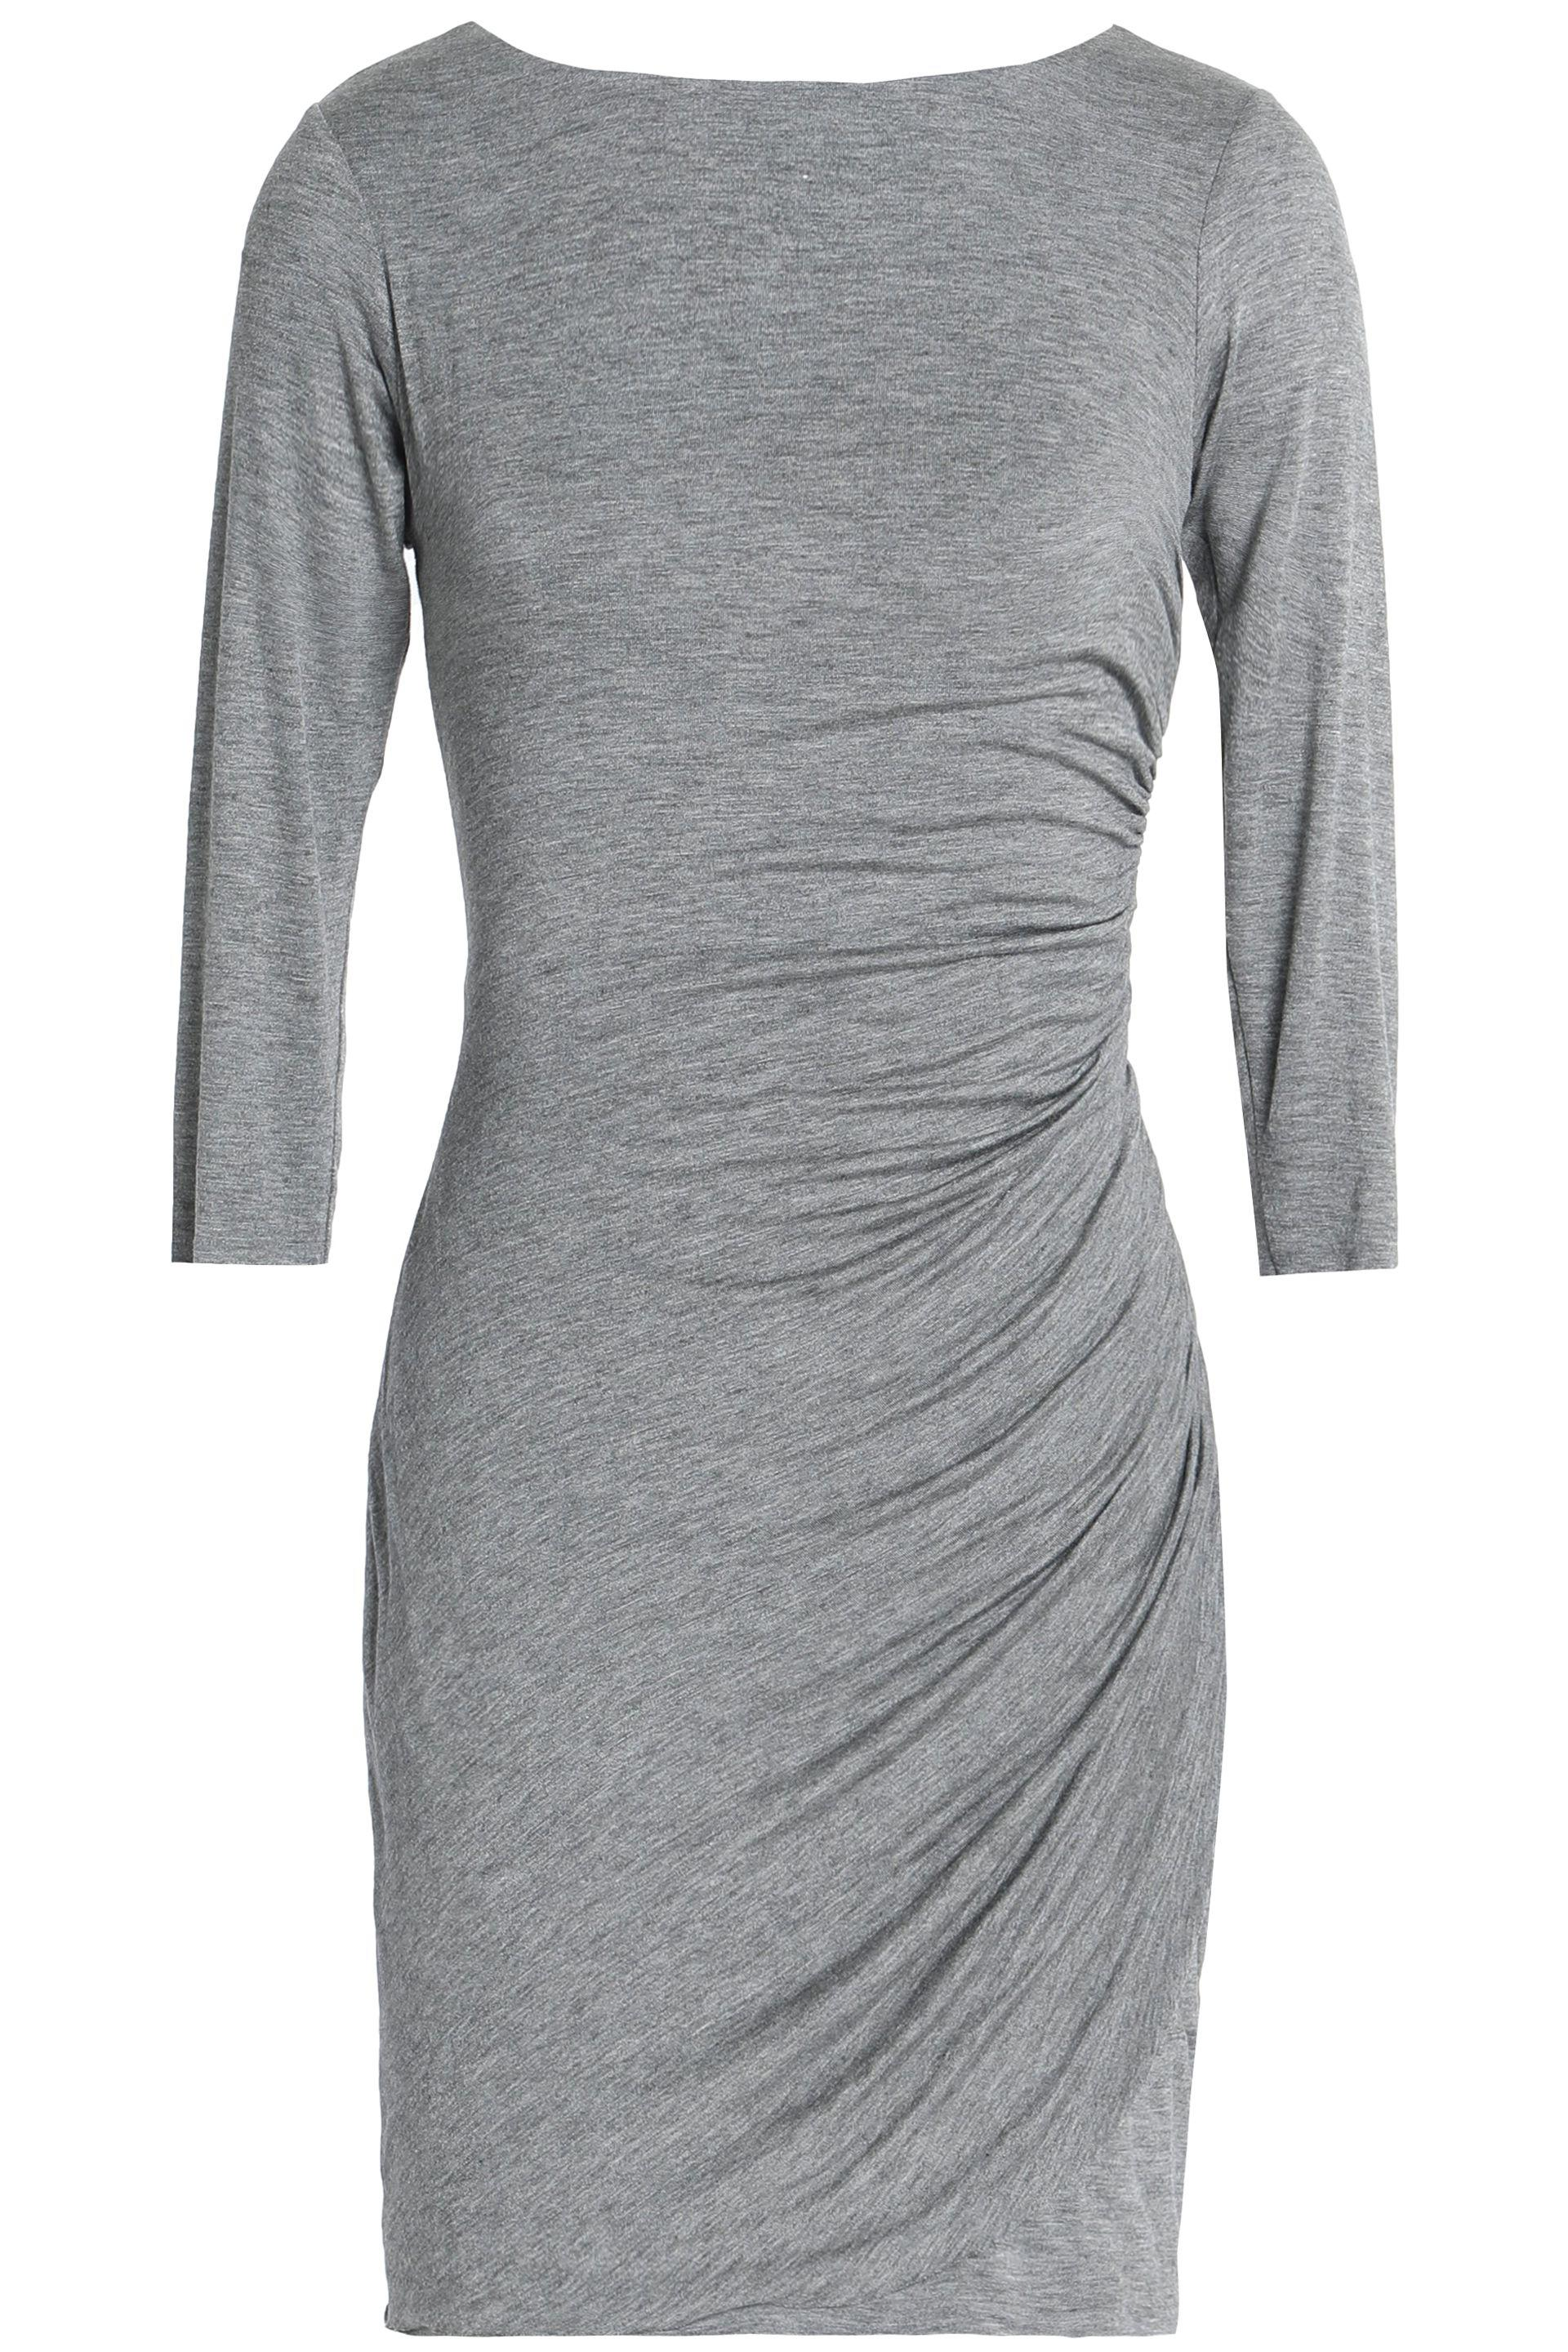 744e96016be Bailey 44 Twist-back Ruched Stretch-jersey Mini Dress in Gray - Lyst